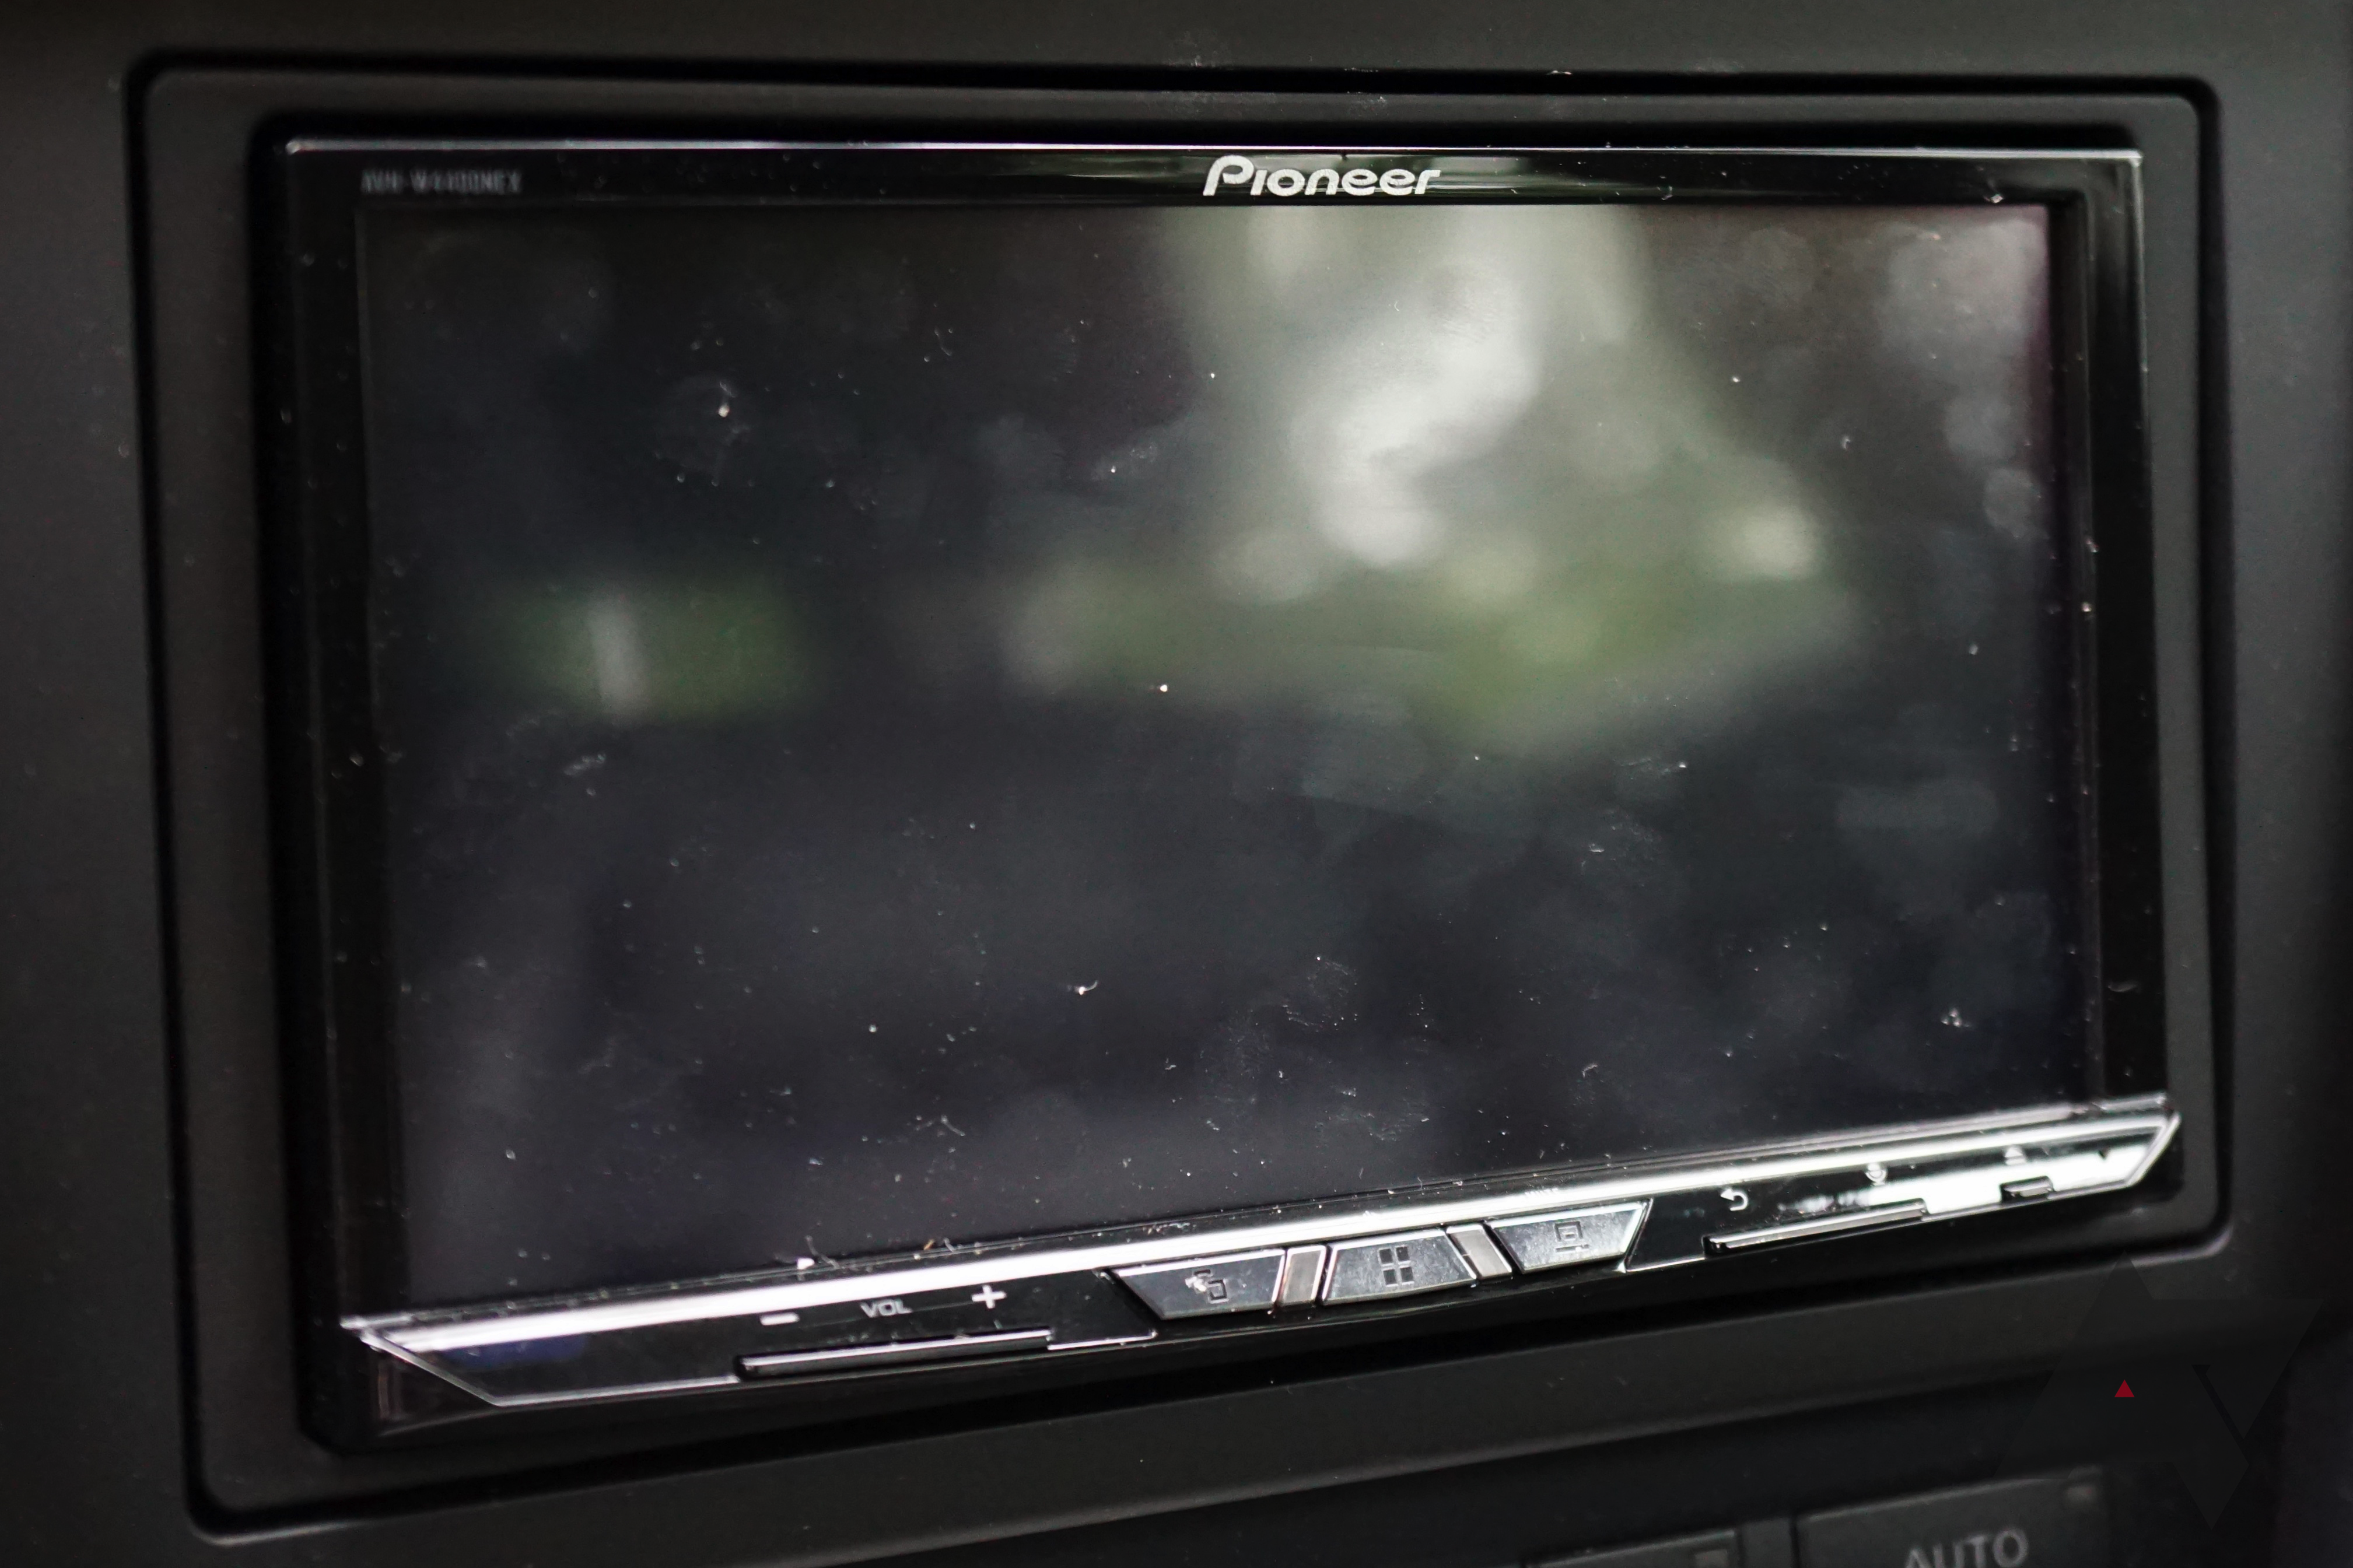 Review: Pioneer's $700 wireless Android Auto head unit is a